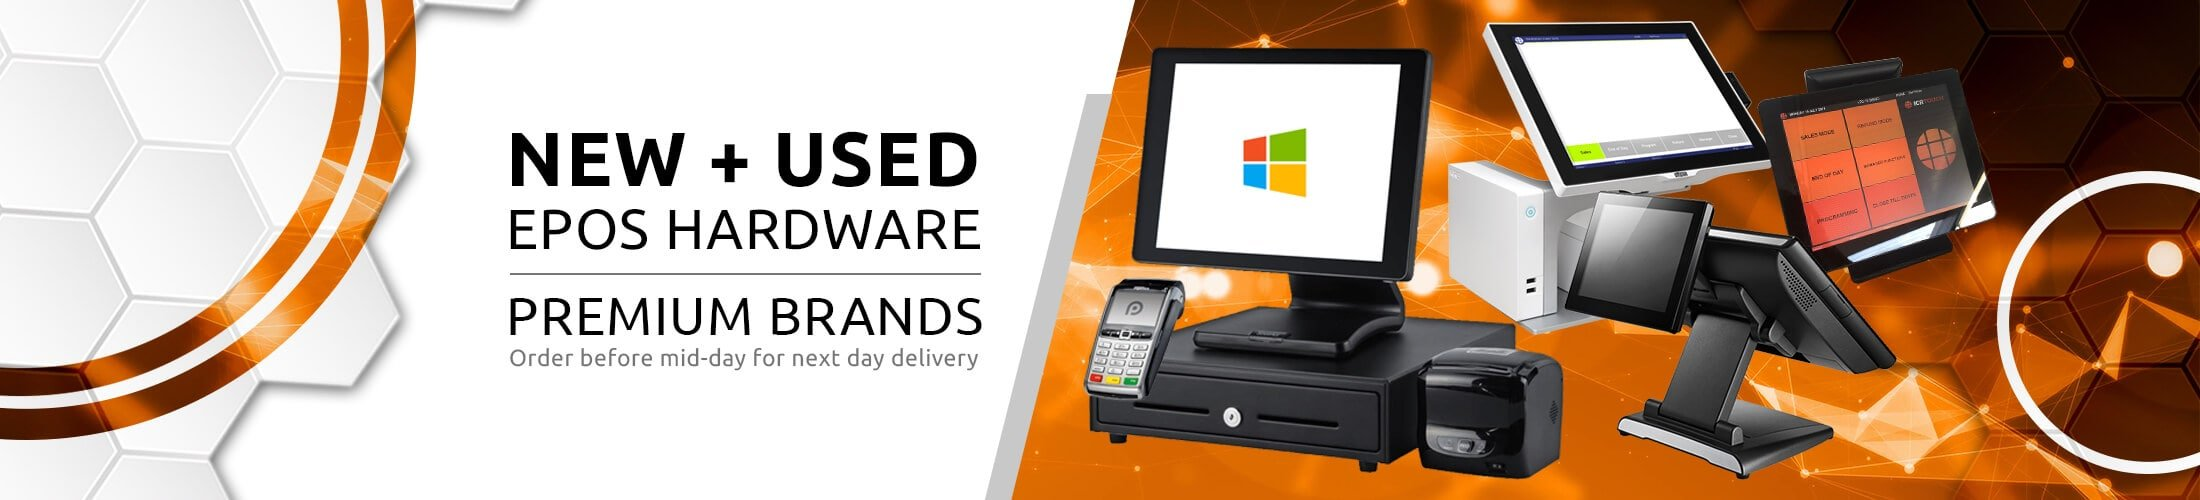 New & Used Epos Hardware